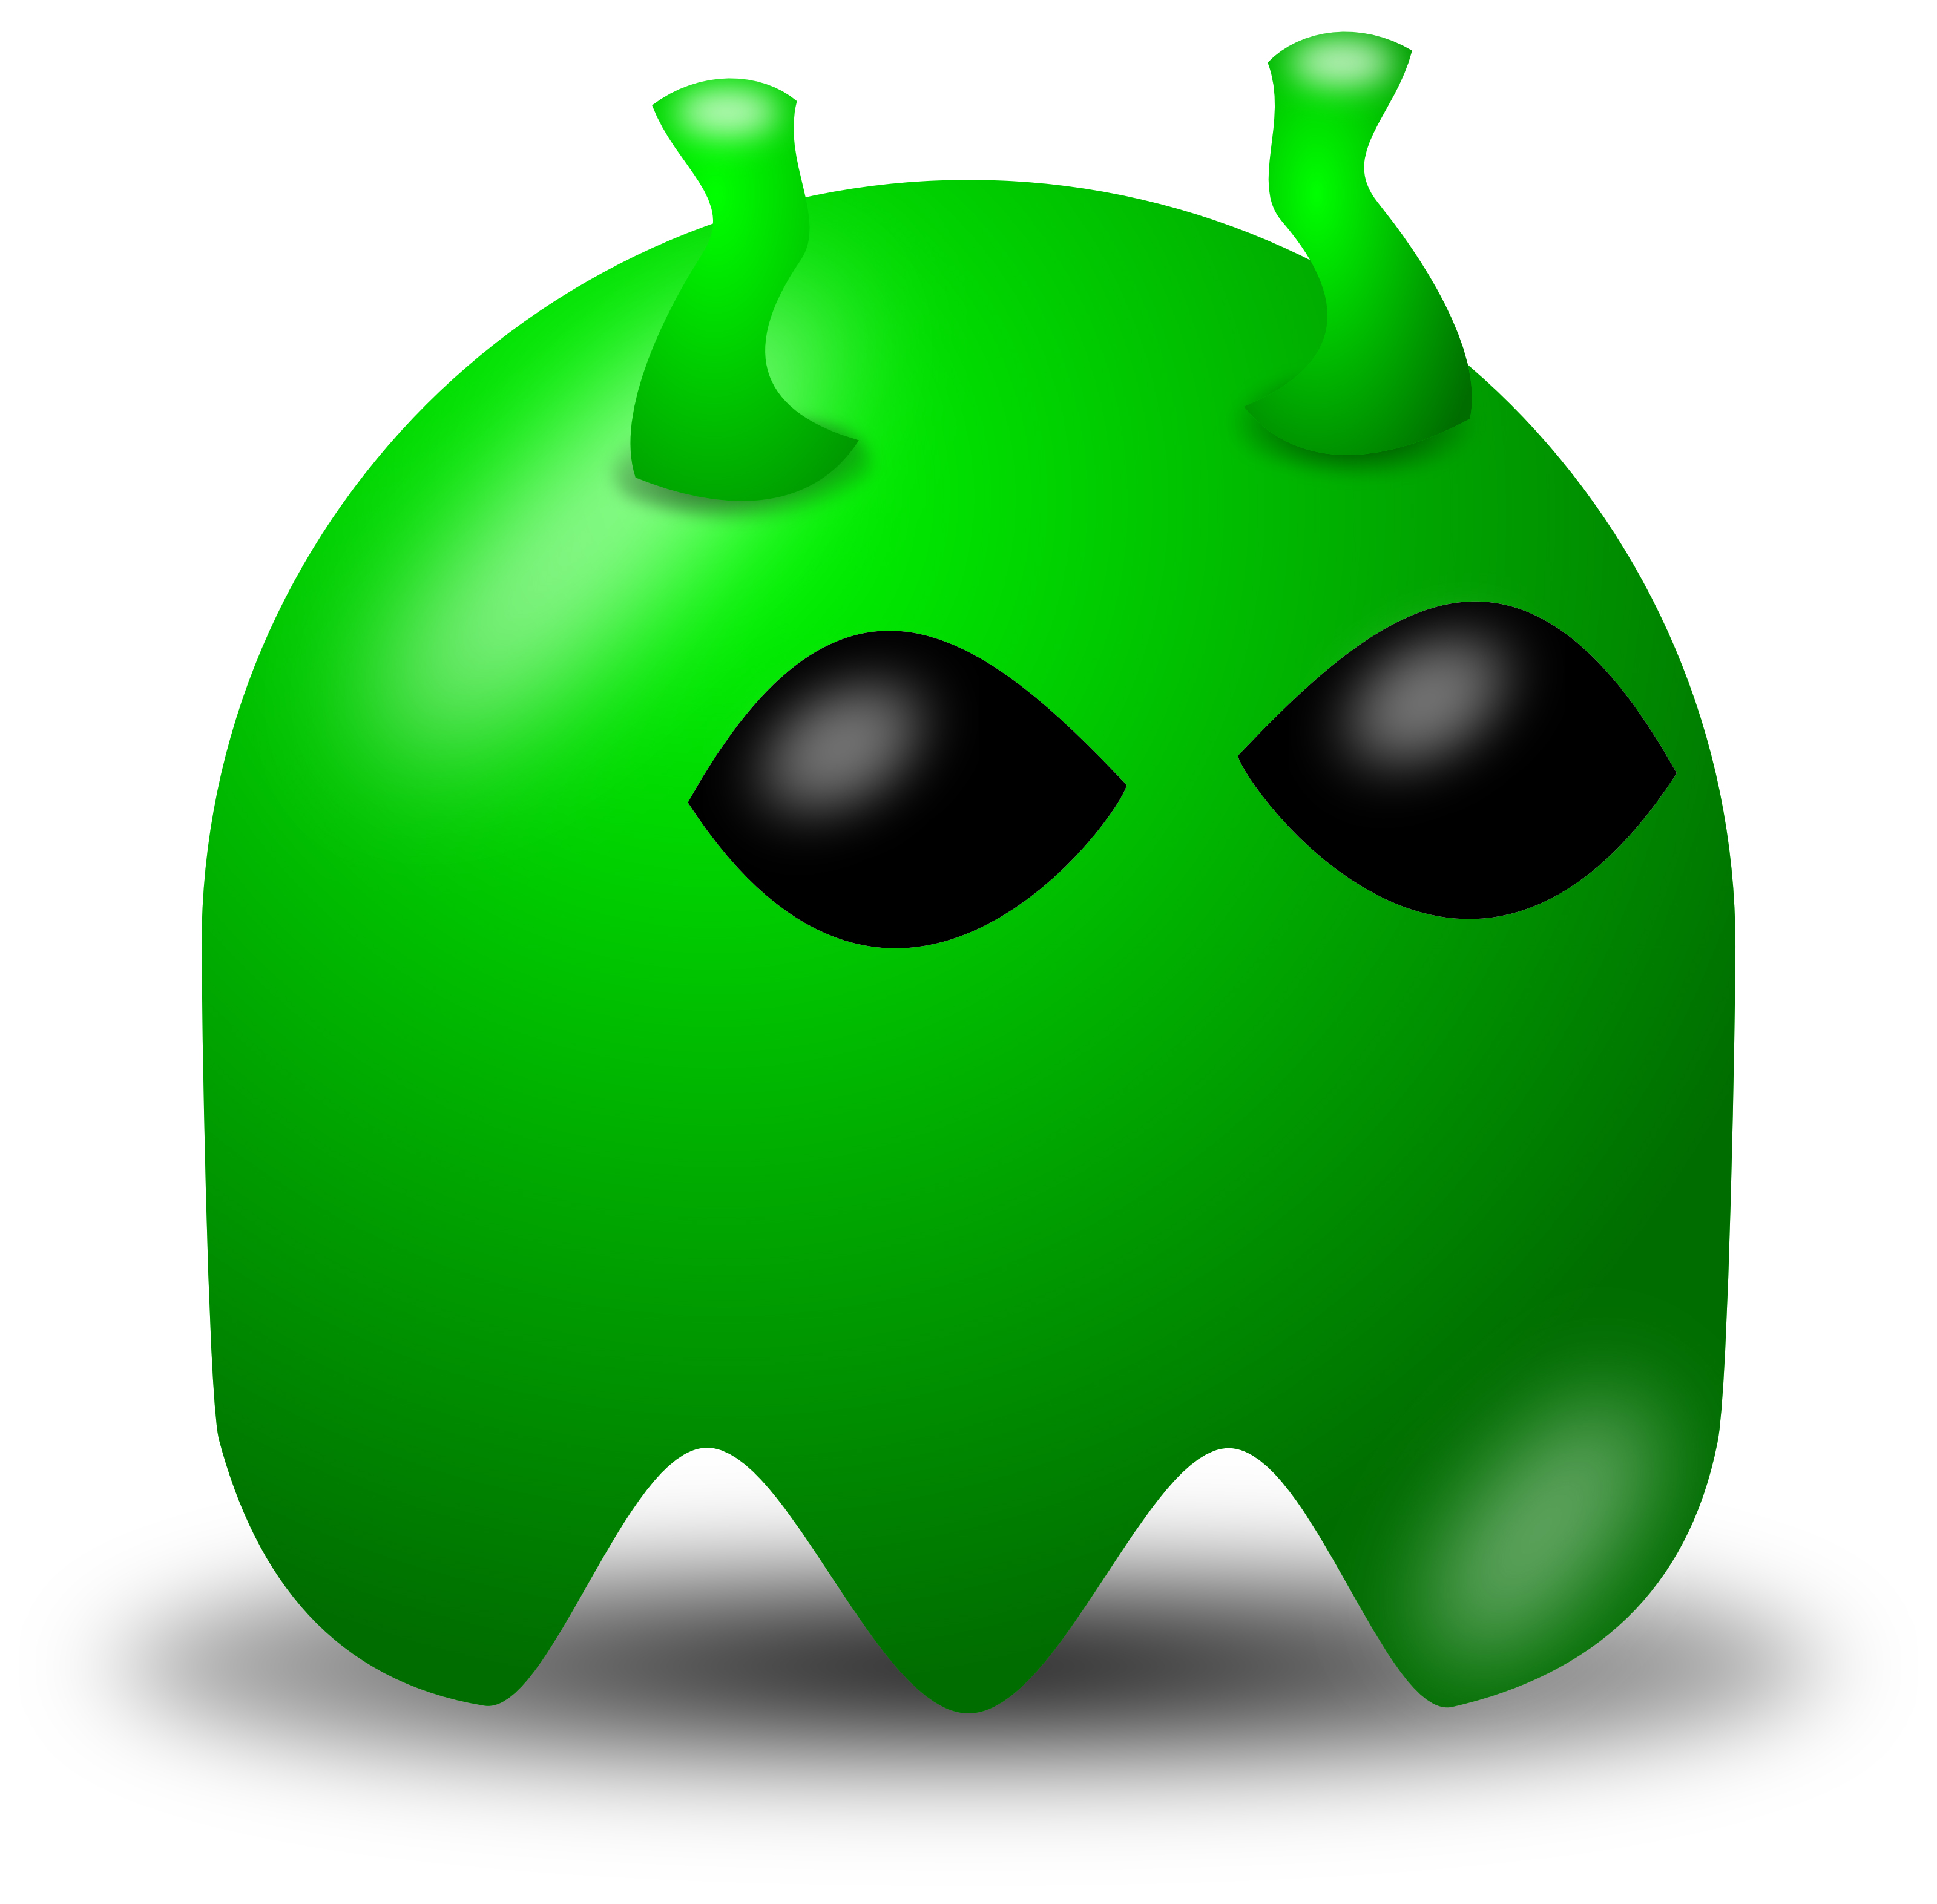 Evil Eyeball Png Free illustrations: .jpg, .png